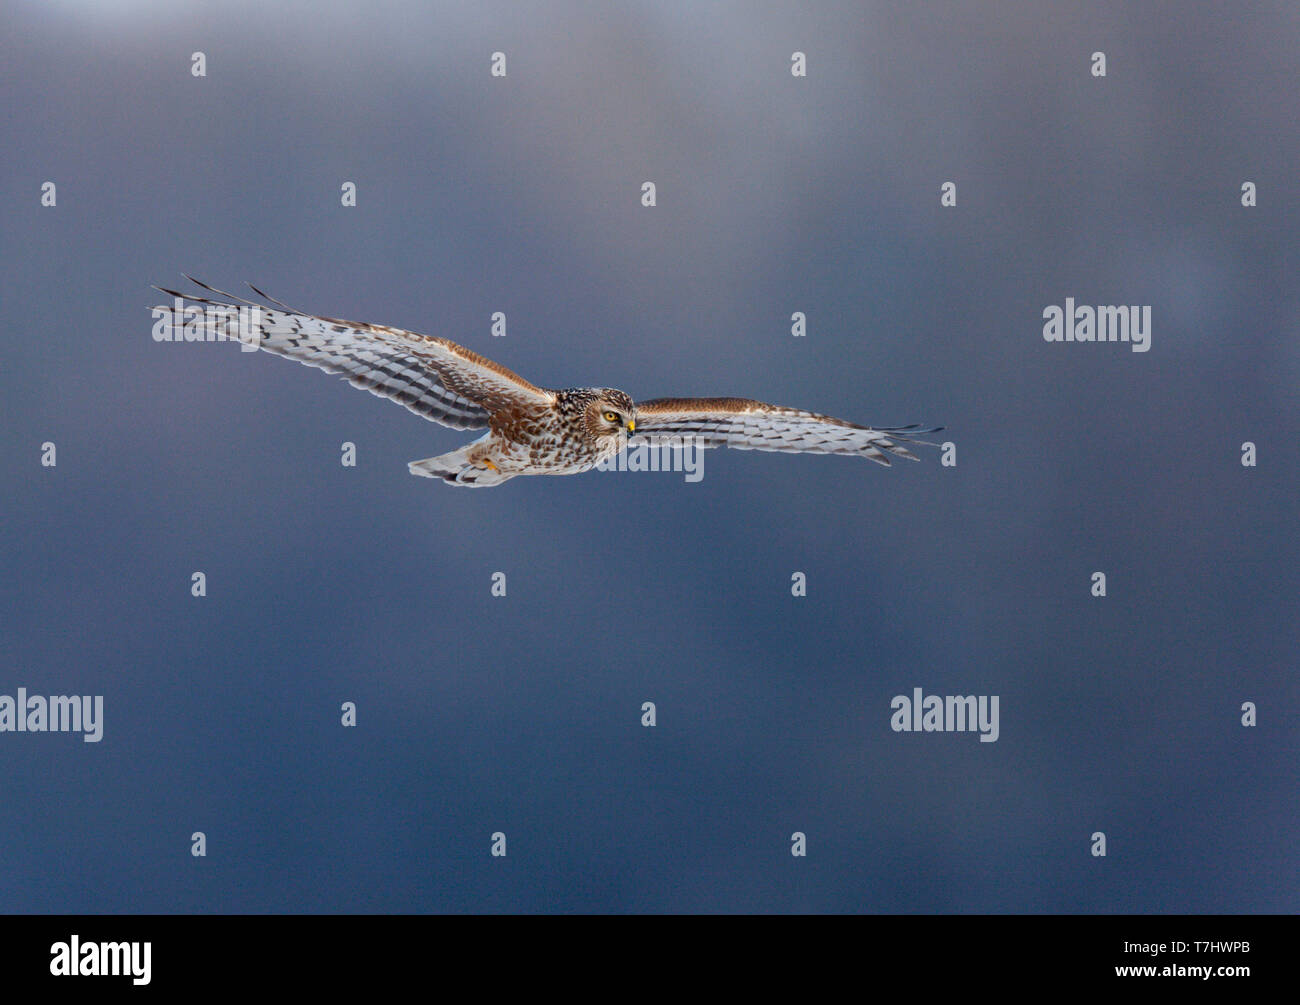 Female Hen Harrier (Circus cyaneus) in flight against a blue background in Limburg, Netherlands. Stock Photo